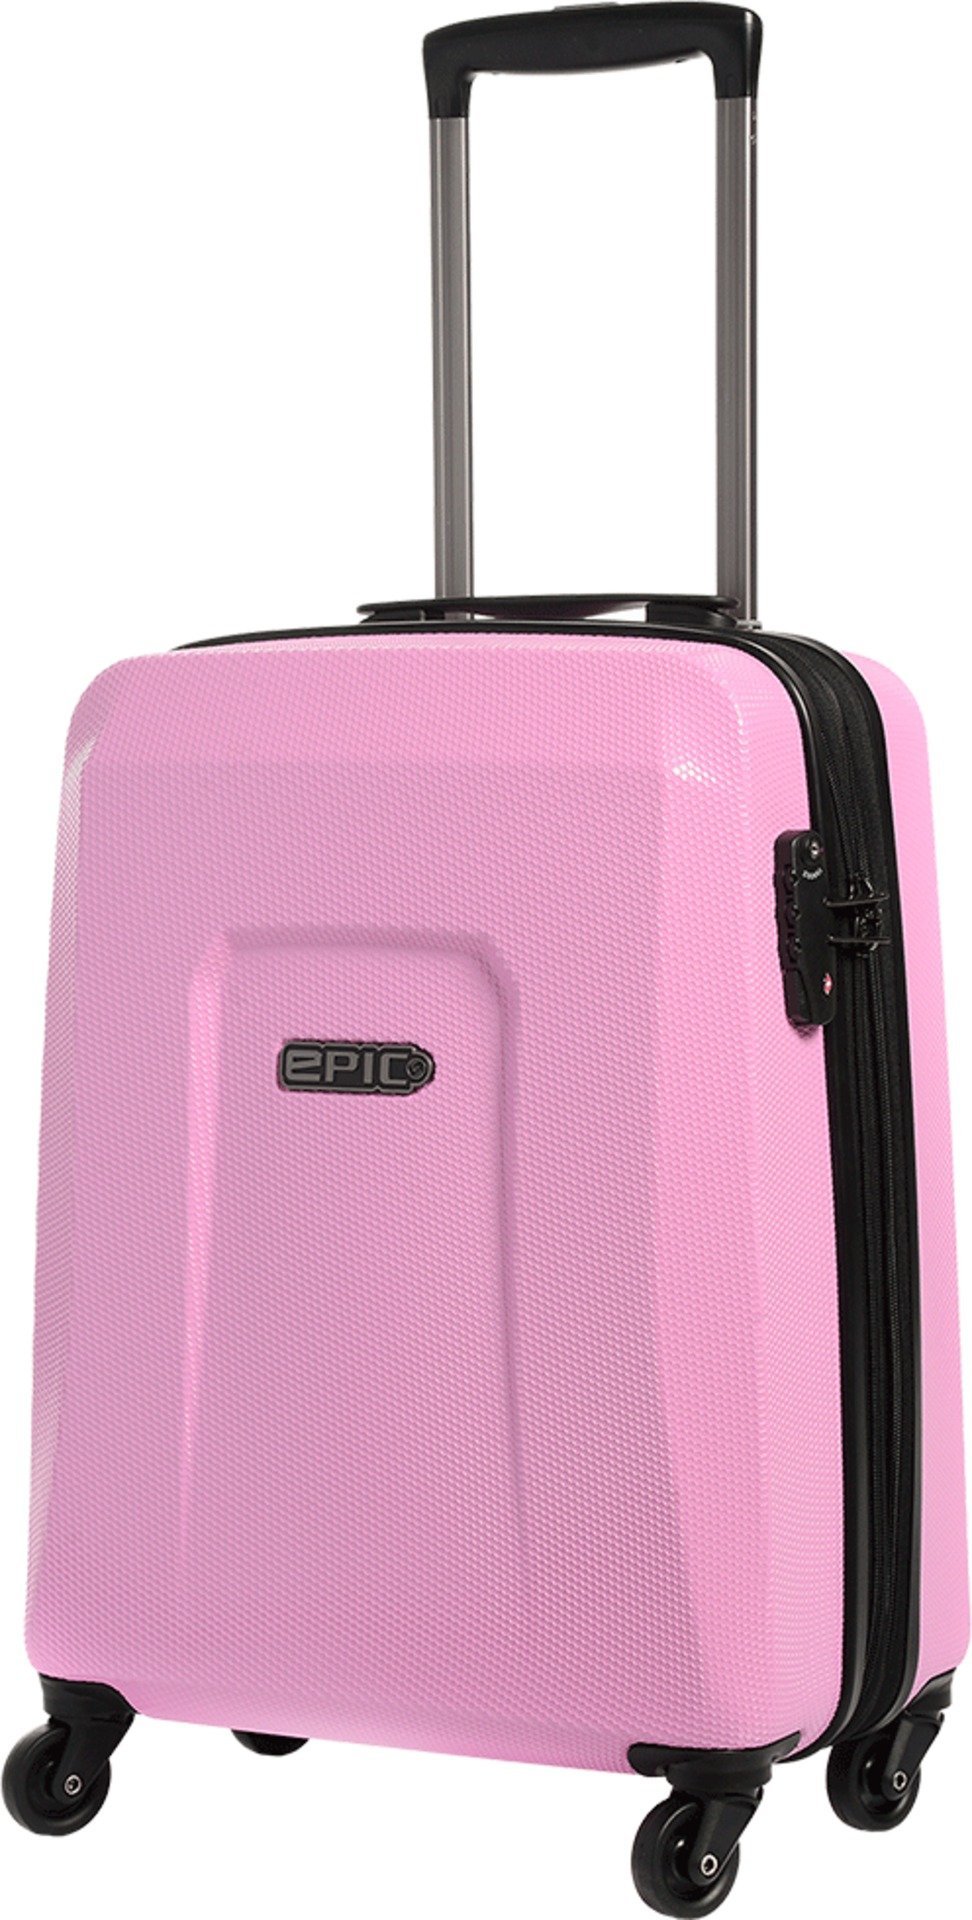 EPIC Travelgear Unisex HDX EX 22'' Trolley Gloss Pink Luggage